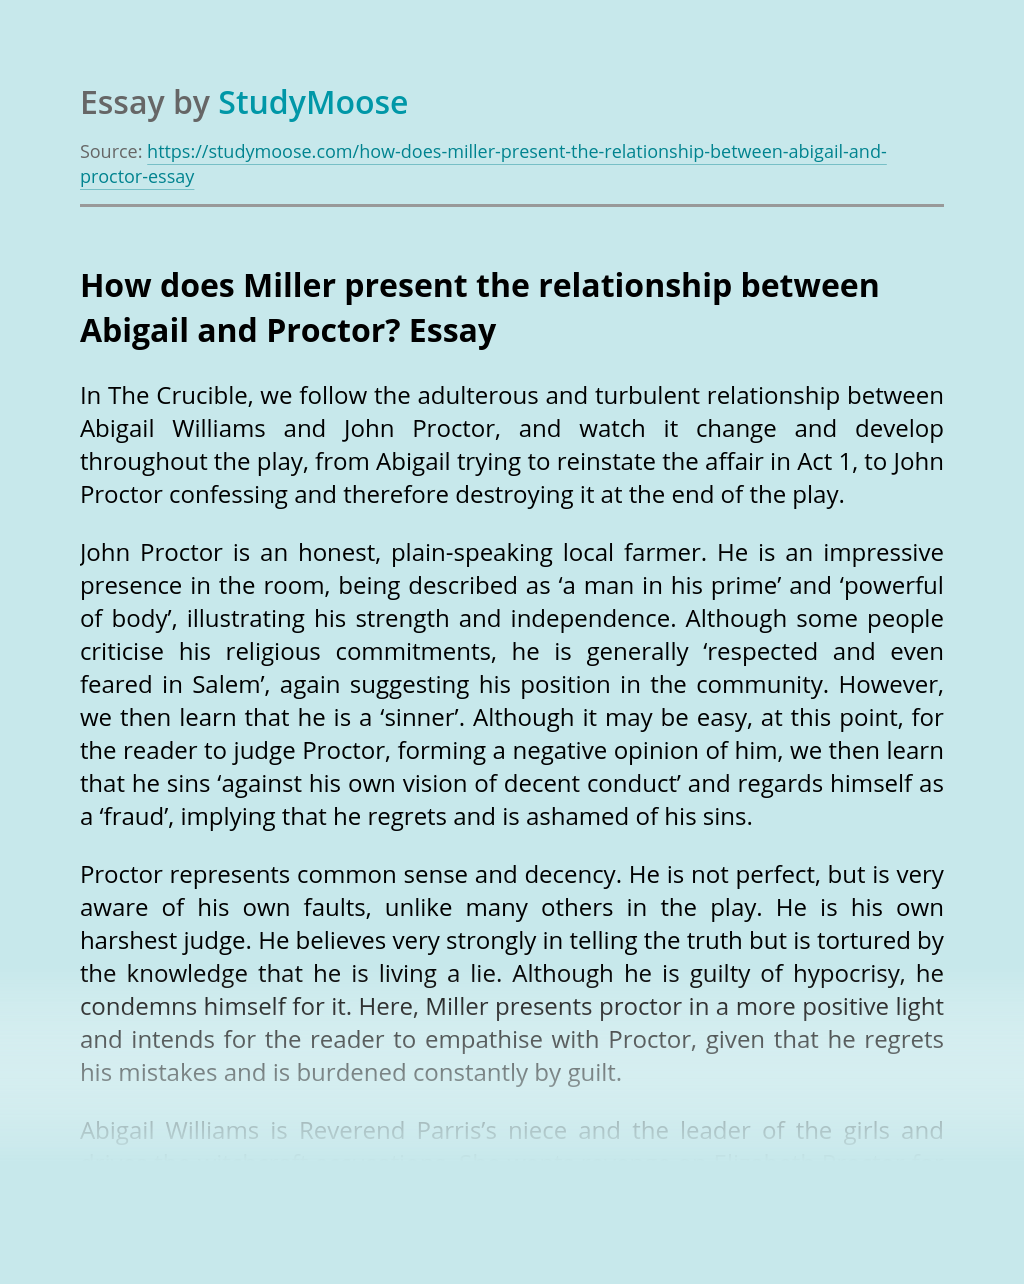 How does Miller present the relationship between Abigail and Proctor?